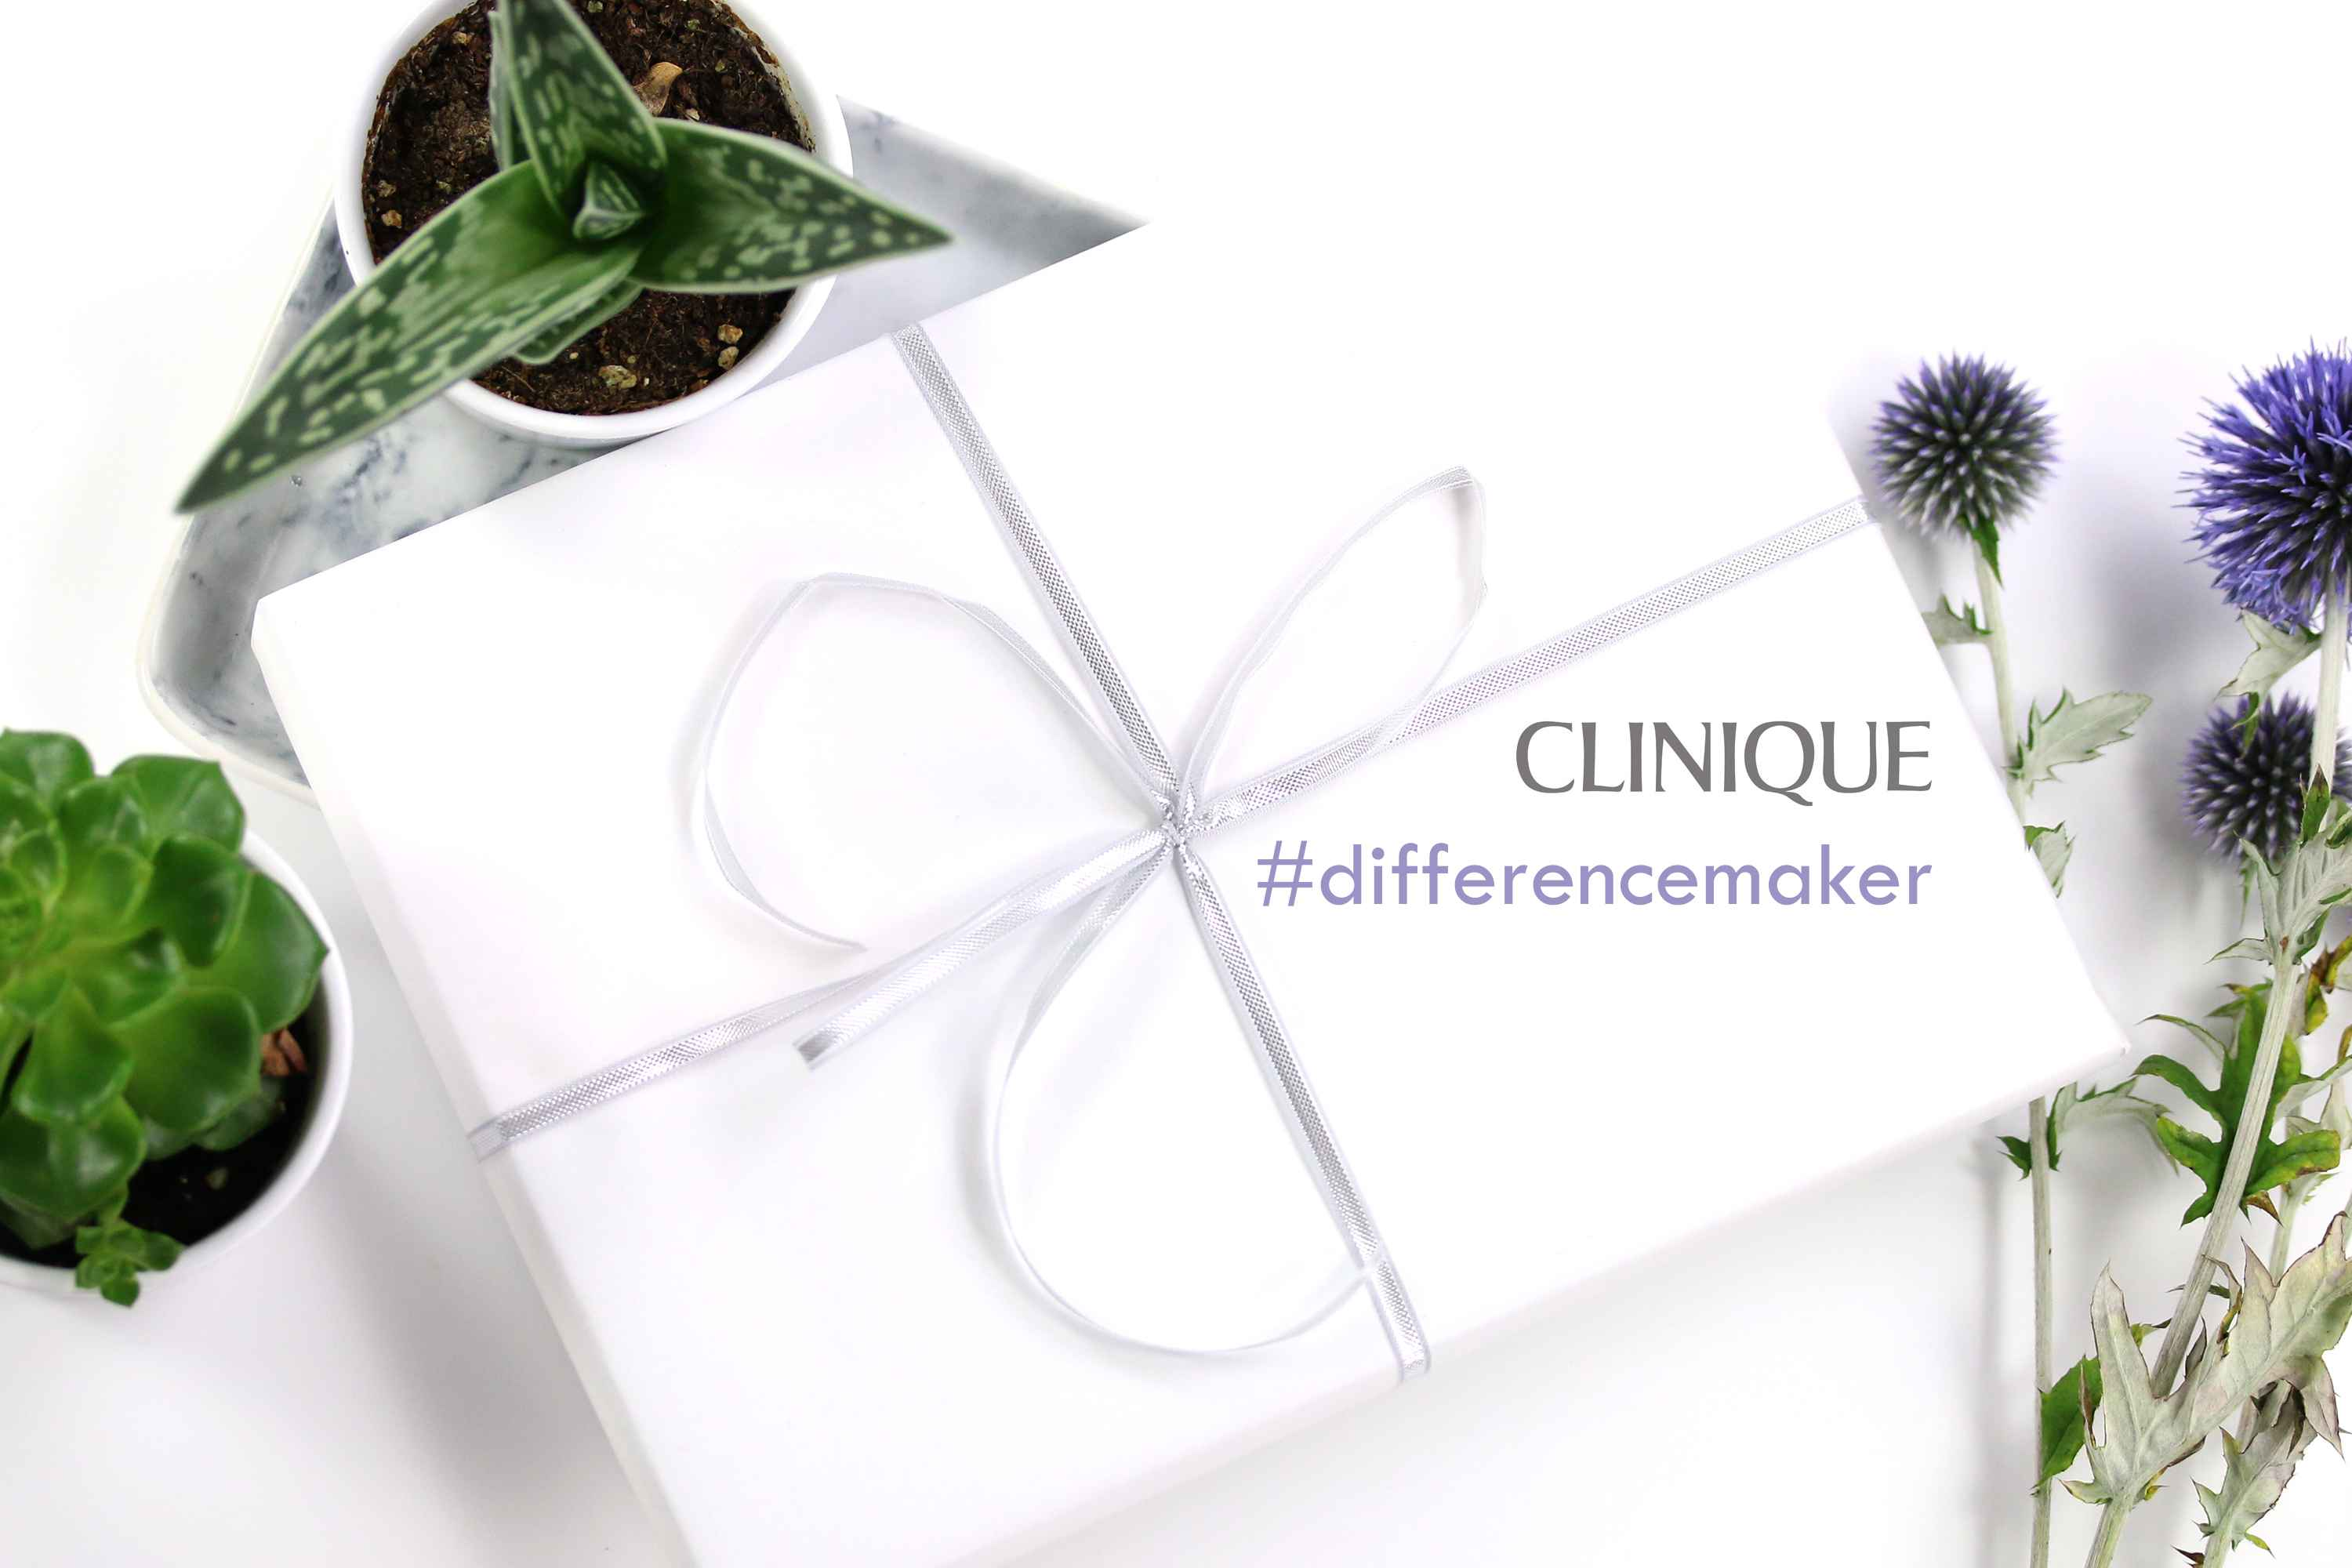 Clinique Difference Maker